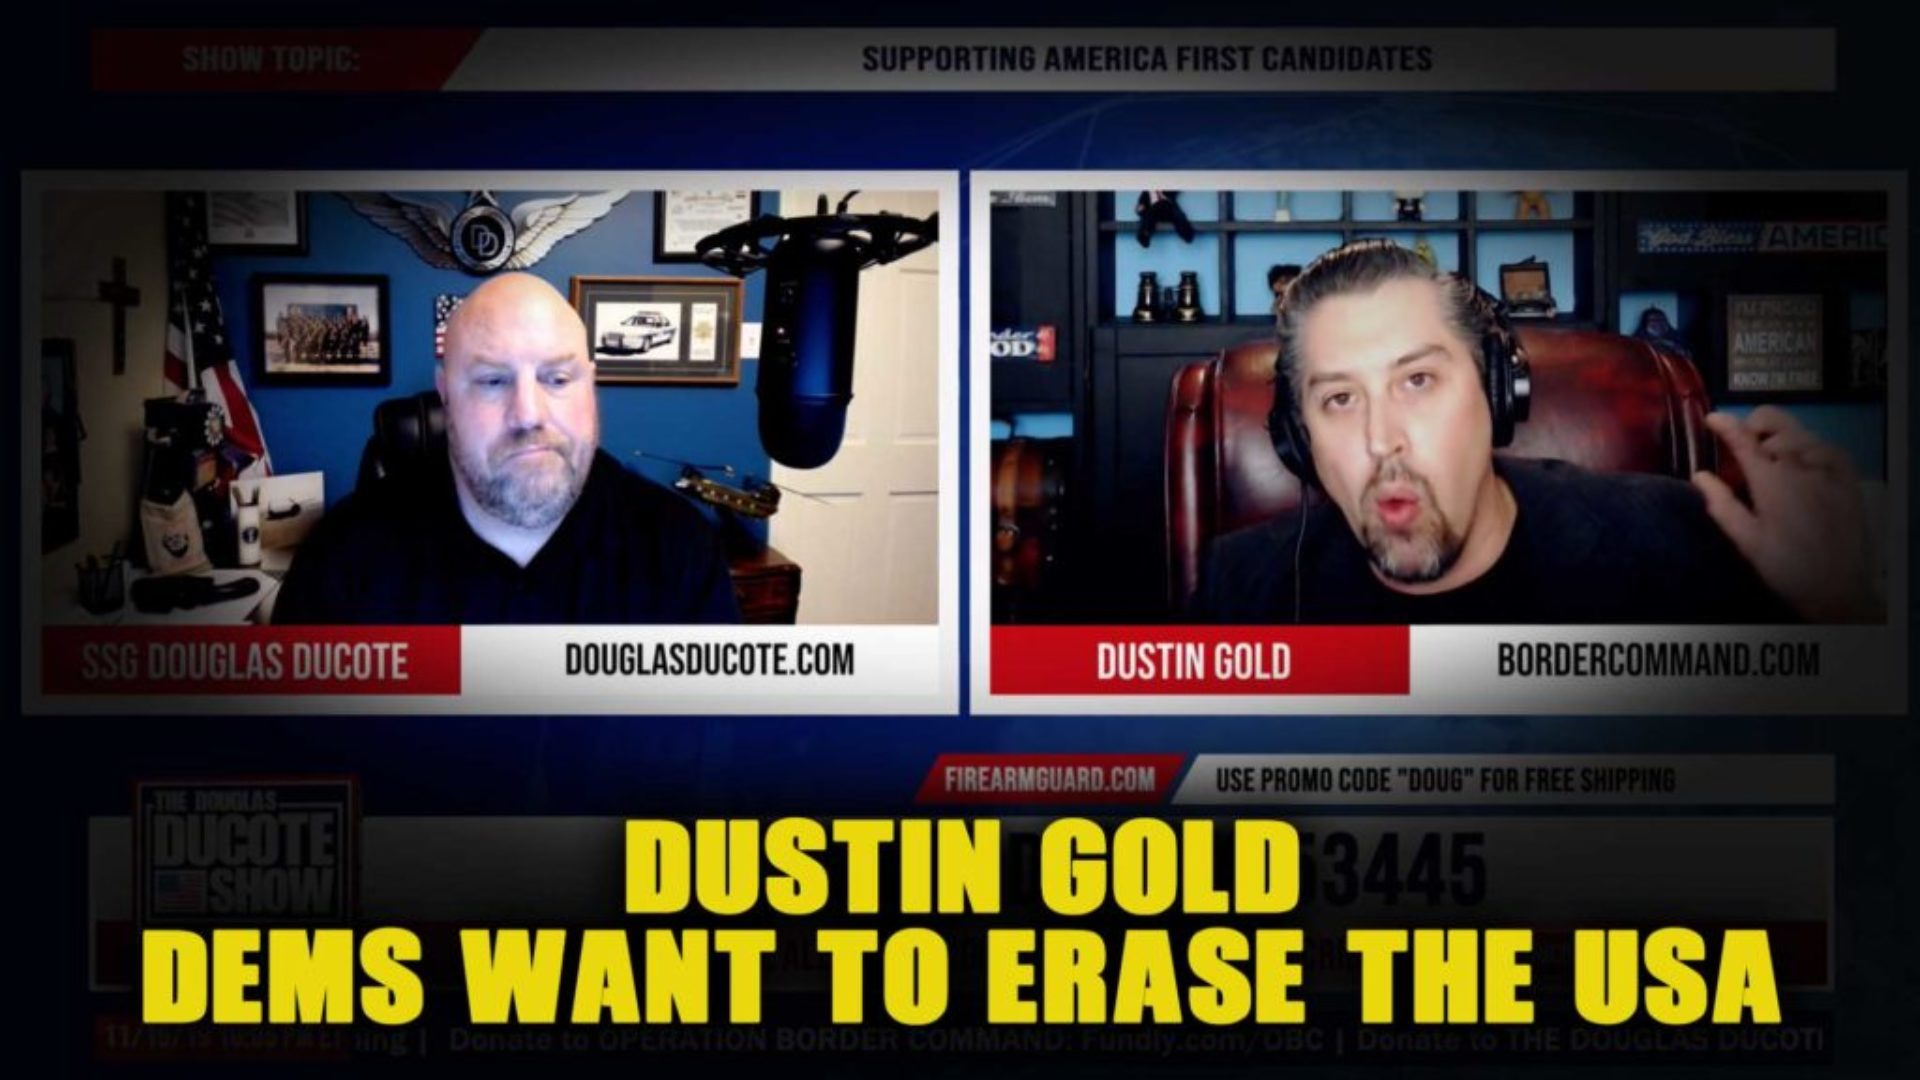 Dustin-Gold-Democrtas-Want-To-Erase-The-USA